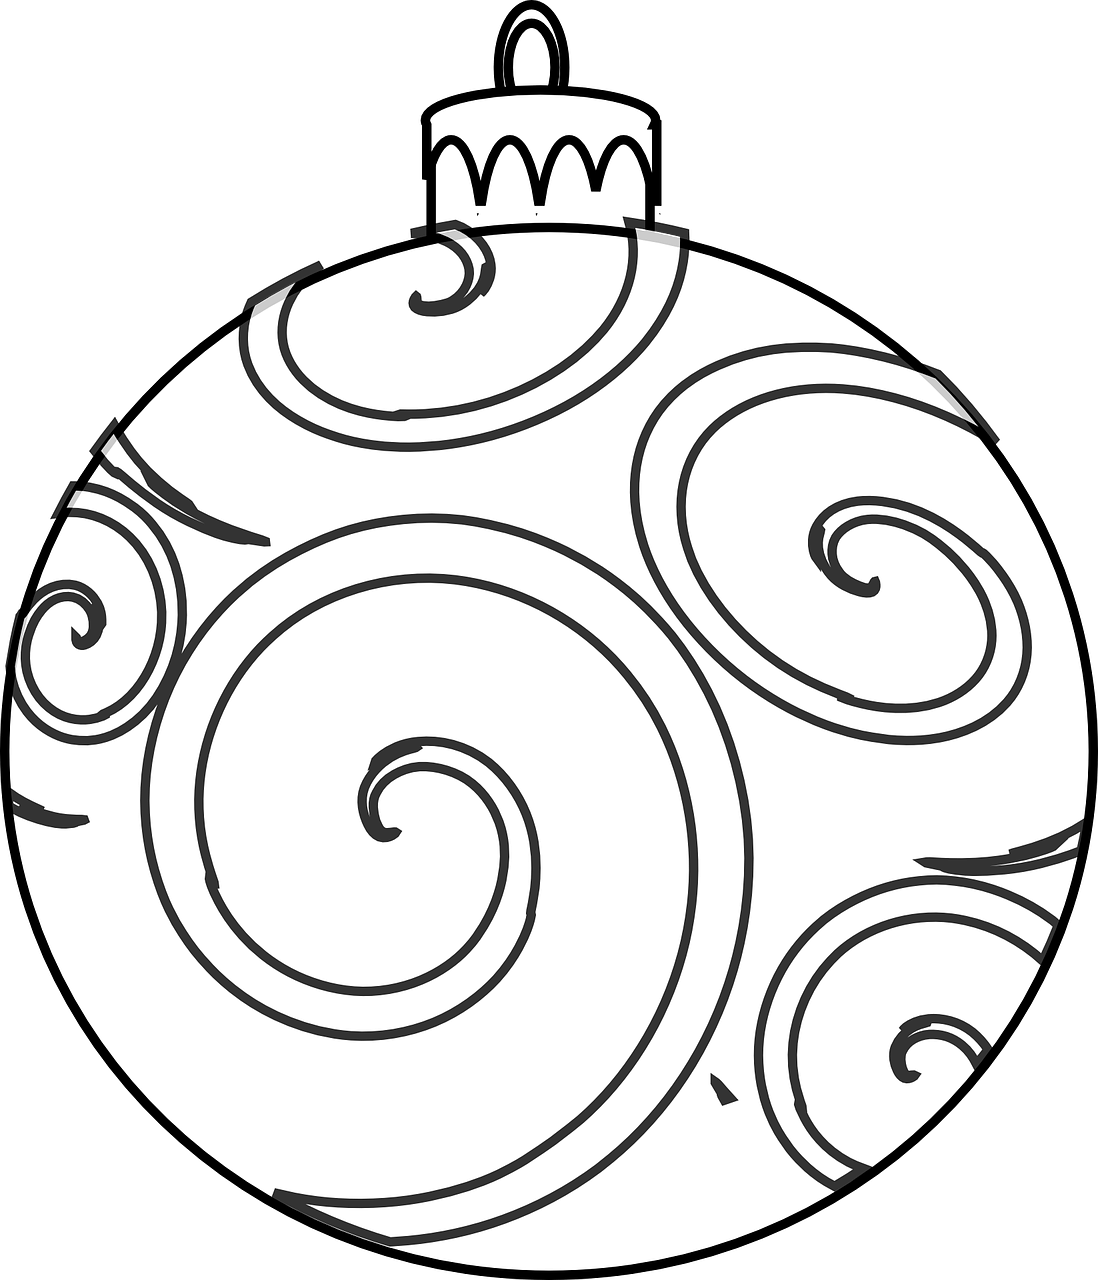 1098x1280 Christmas Ornaments Coloring Pages